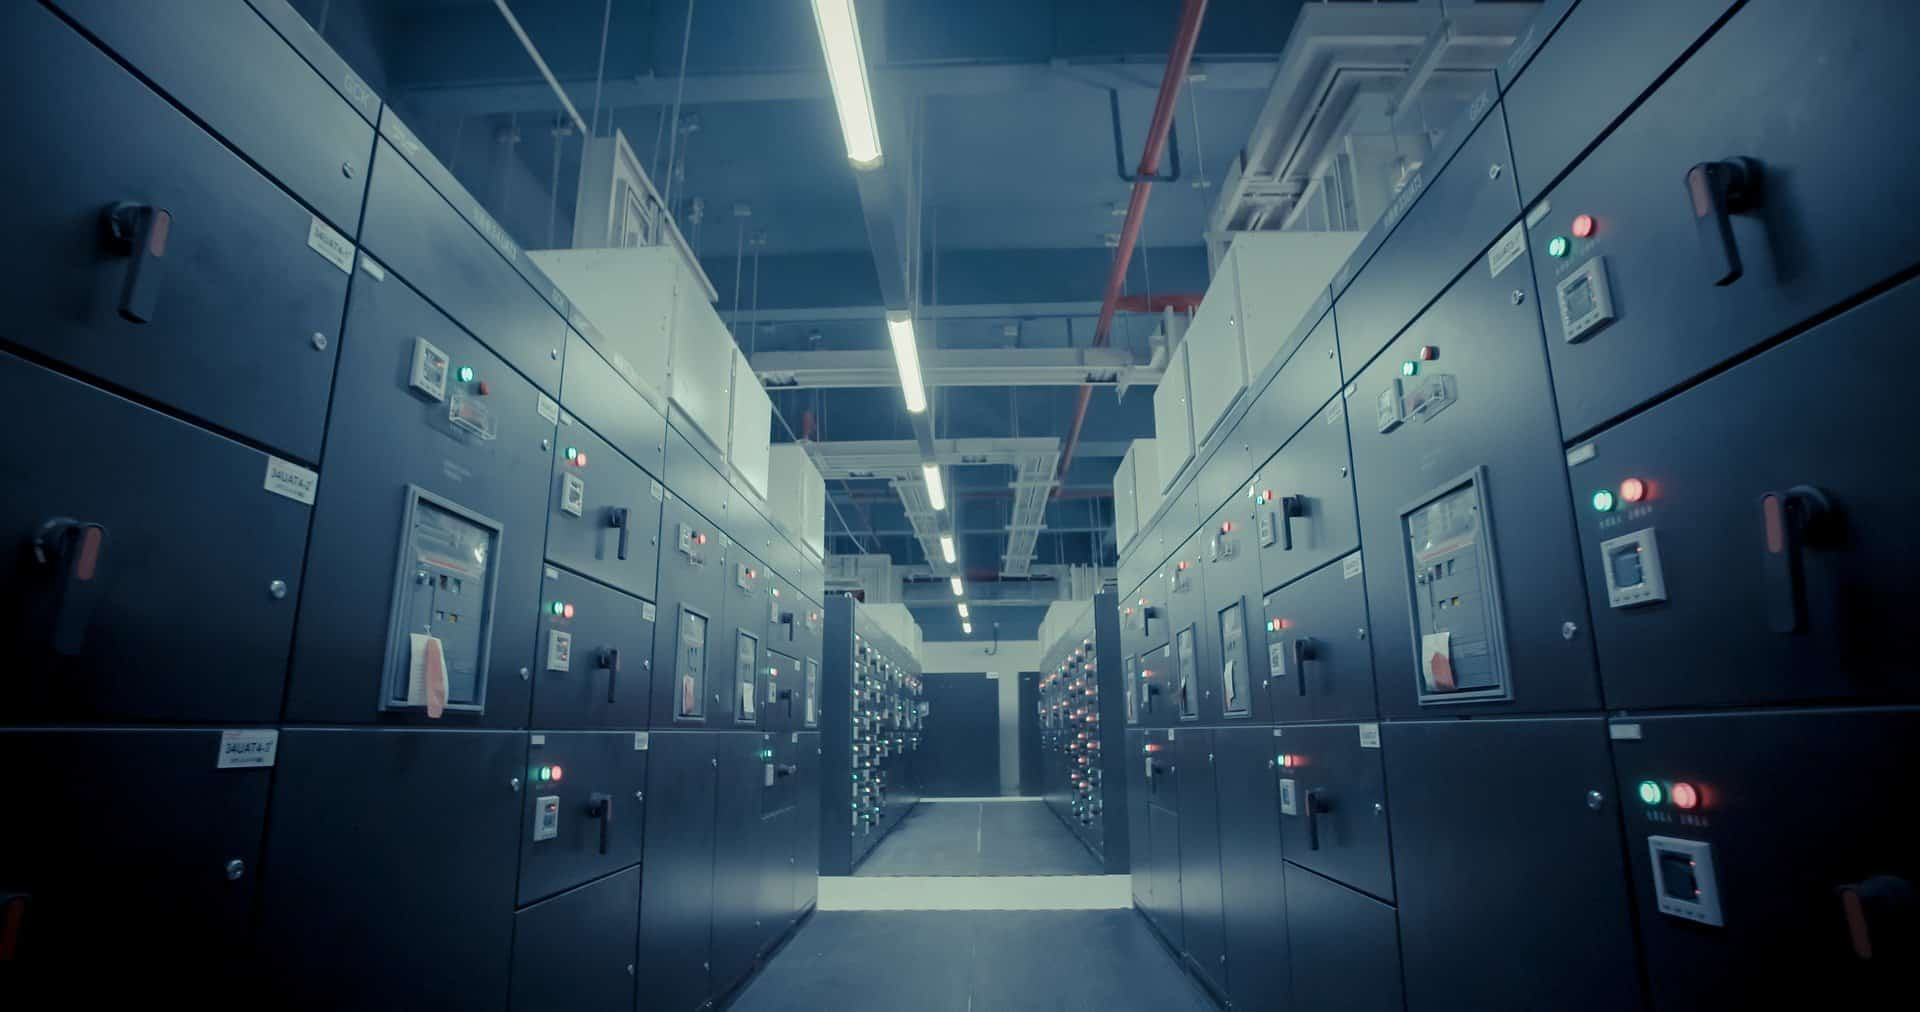 Fire Suppression For Your Server Room, Data Center or NOC